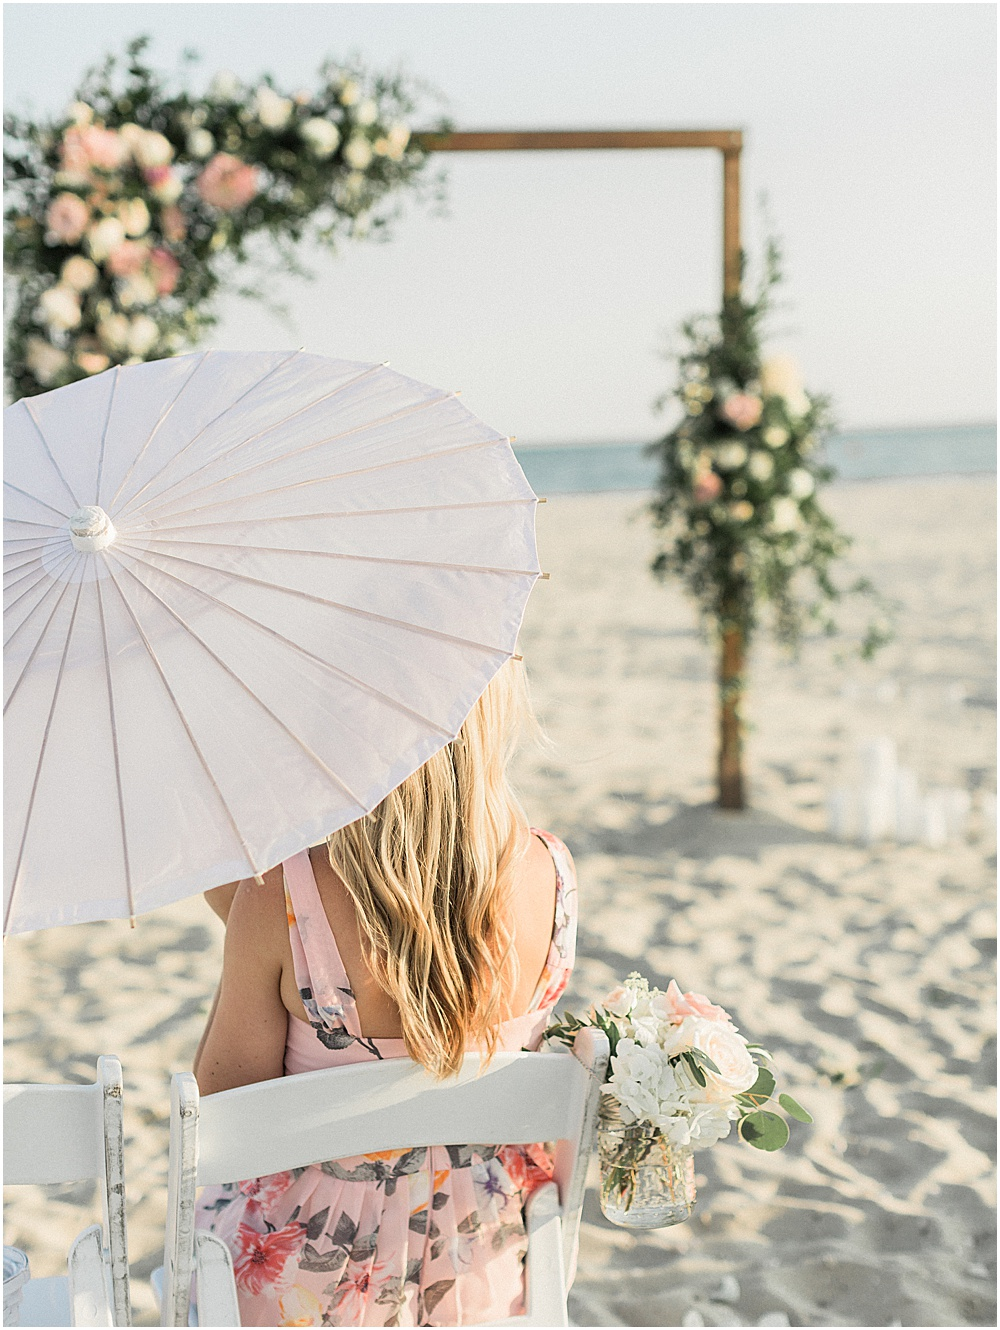 wychmere_beach_club_emily_kevin_beach_plum_floral_french_blue_cape_cod_harwichport_massachusetts_boston_wedding_photographer_meredith_jane_photography_photo_0545.jpg